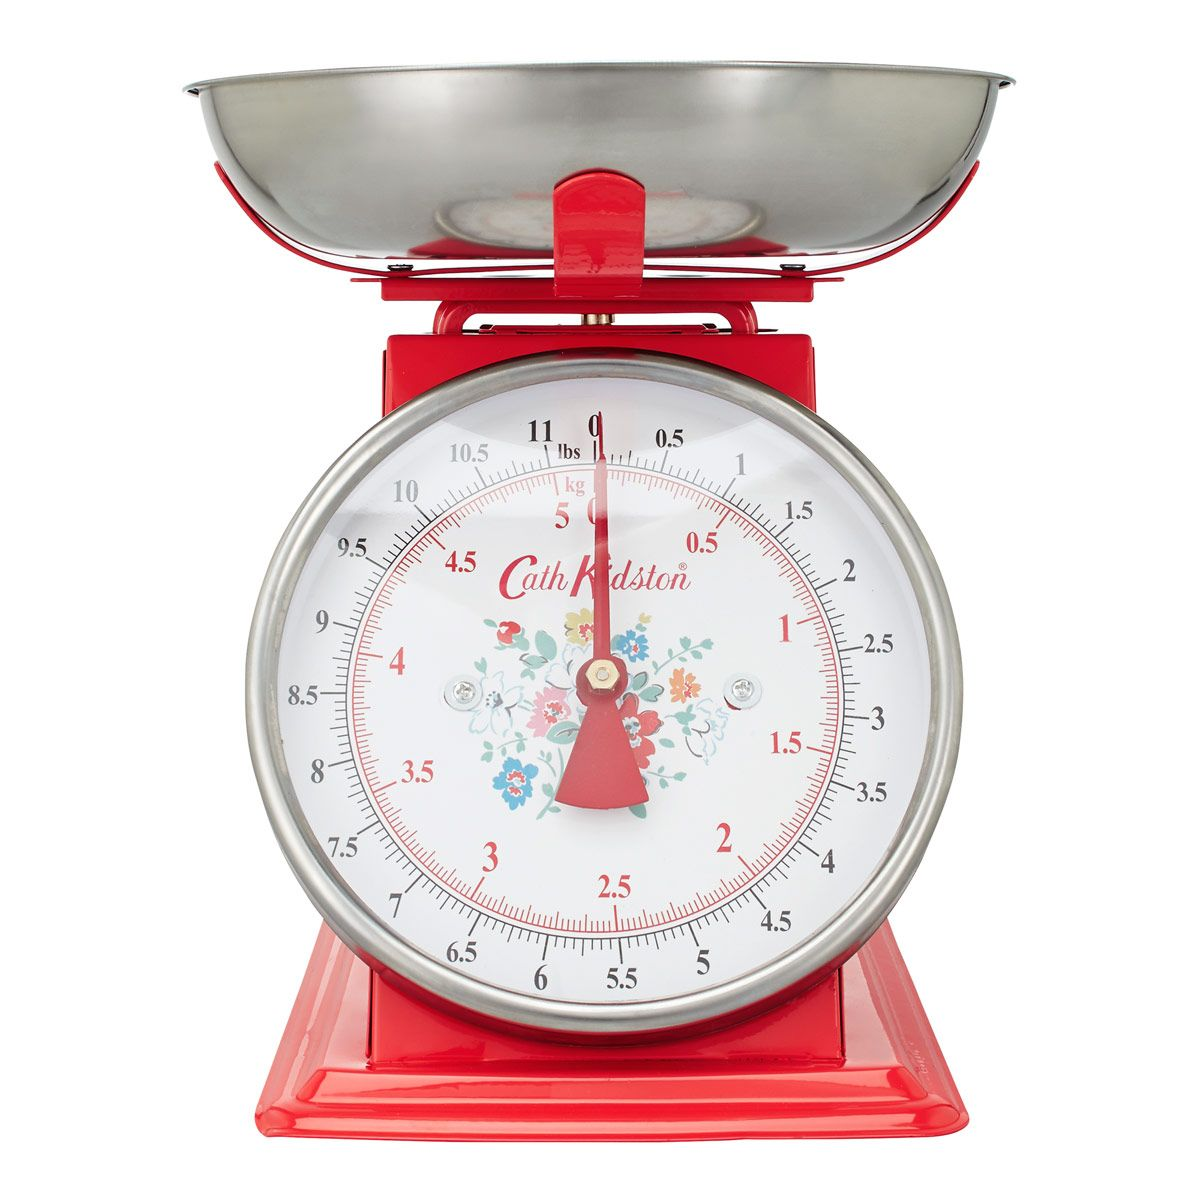 Small Kitchen Weighing Scales Portuguese Brass Weighing Scales Weighing Scale Kitchen Scales